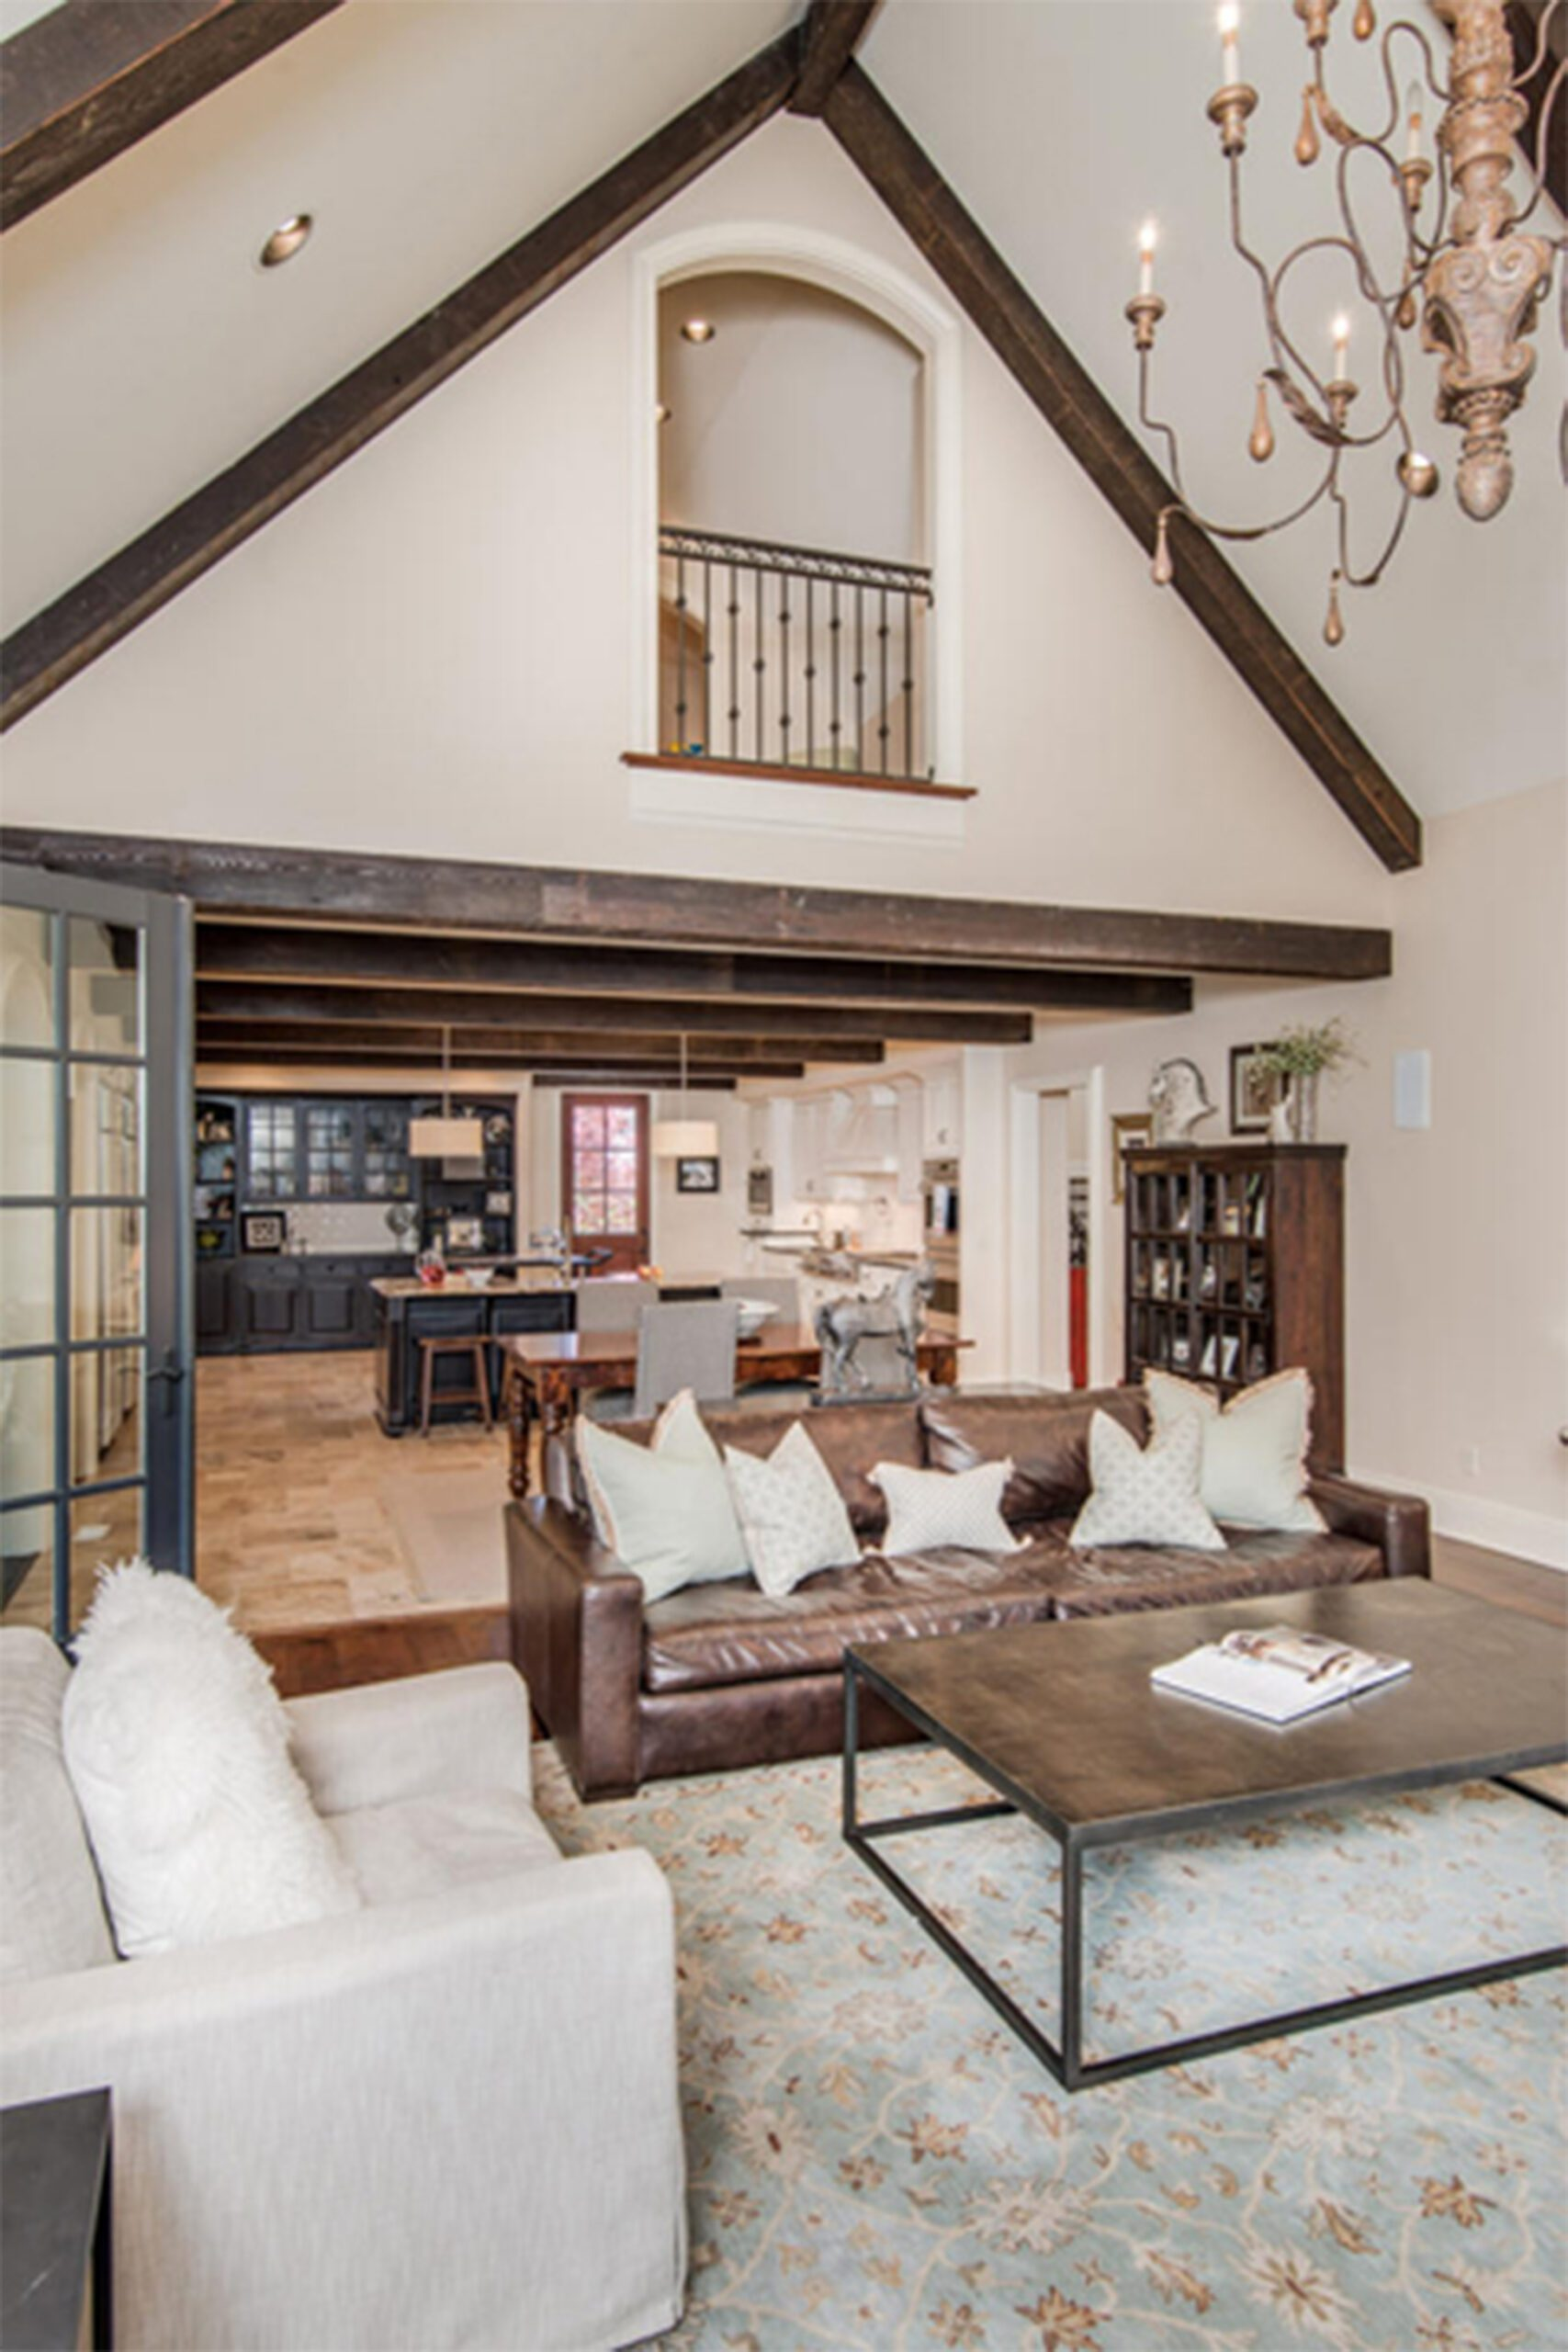 a brand new custom home built with a focus on home improvements